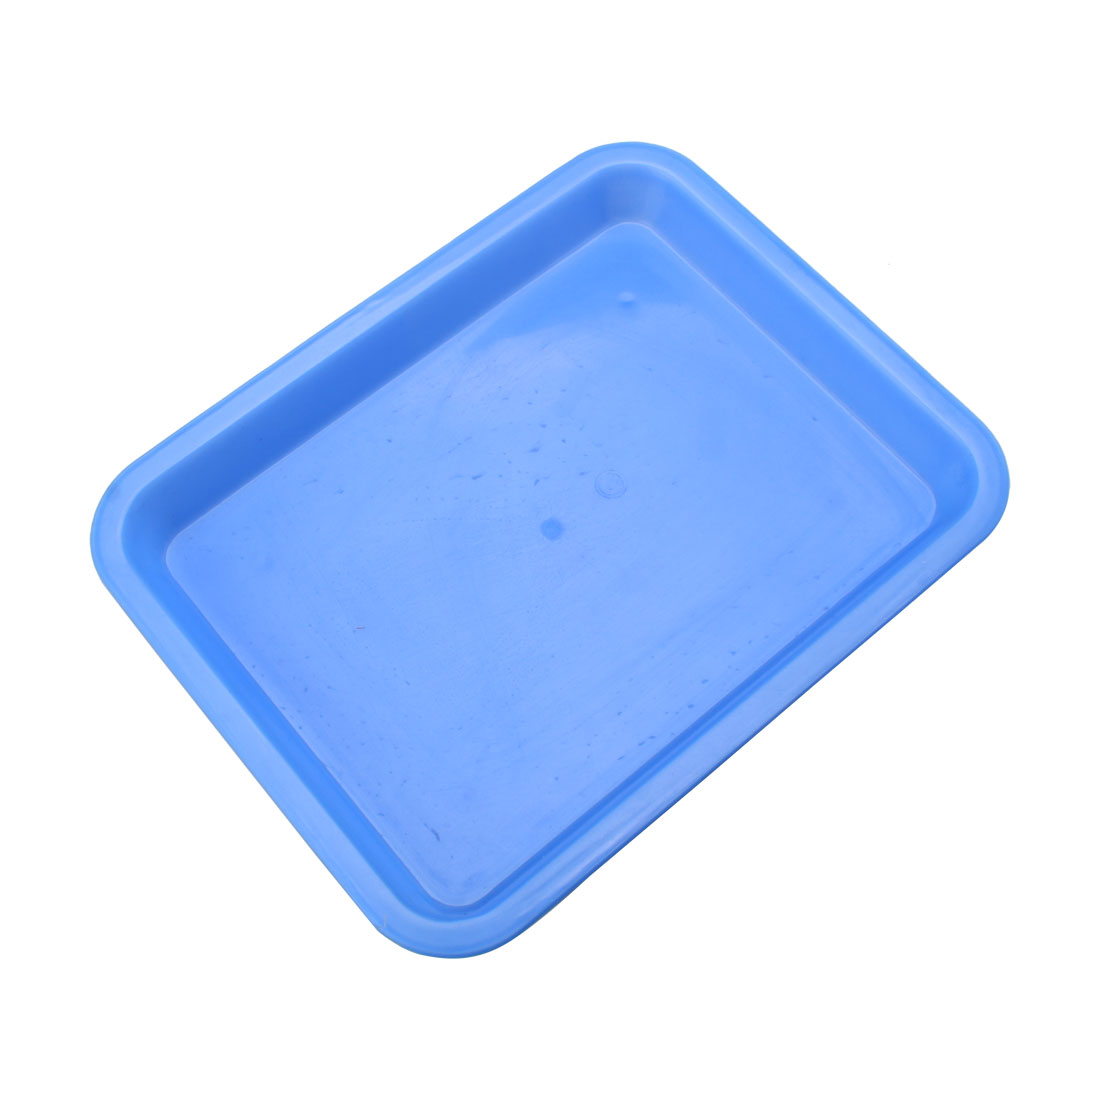 Restaurant Hotel Plastic Square Shaped Fast Food Drinks Serving Tray Blue